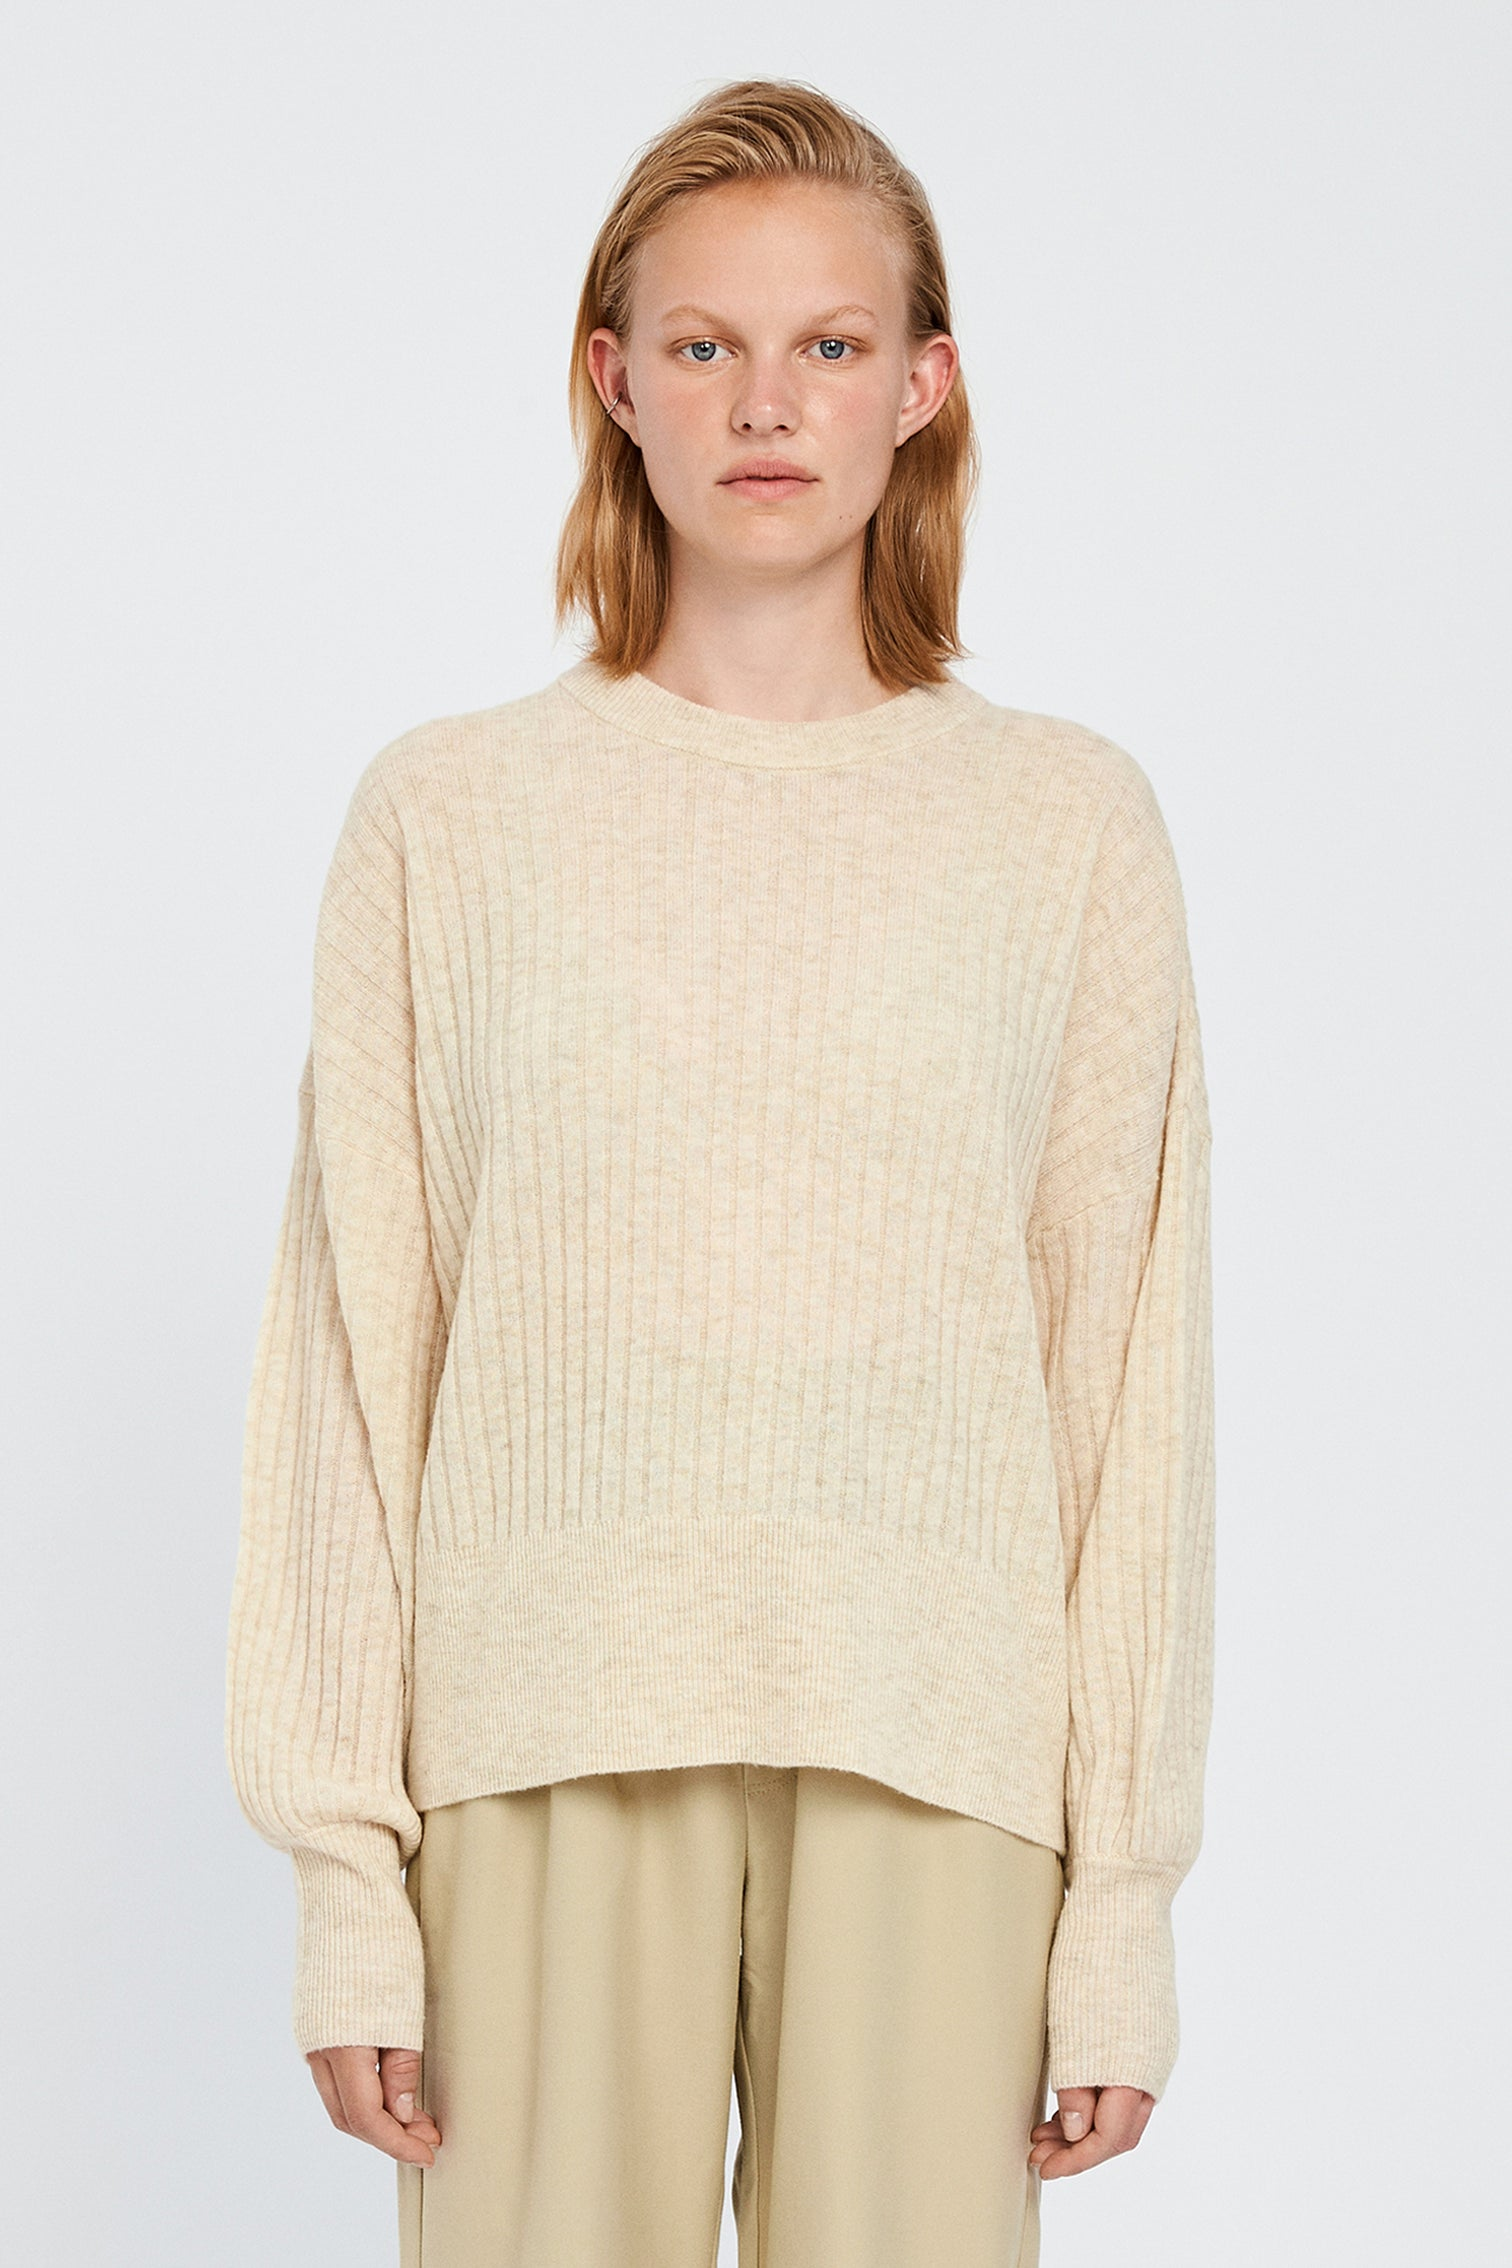 Won Hundred Women Blakely O-neck Knit Knitwear Cannoli Cream